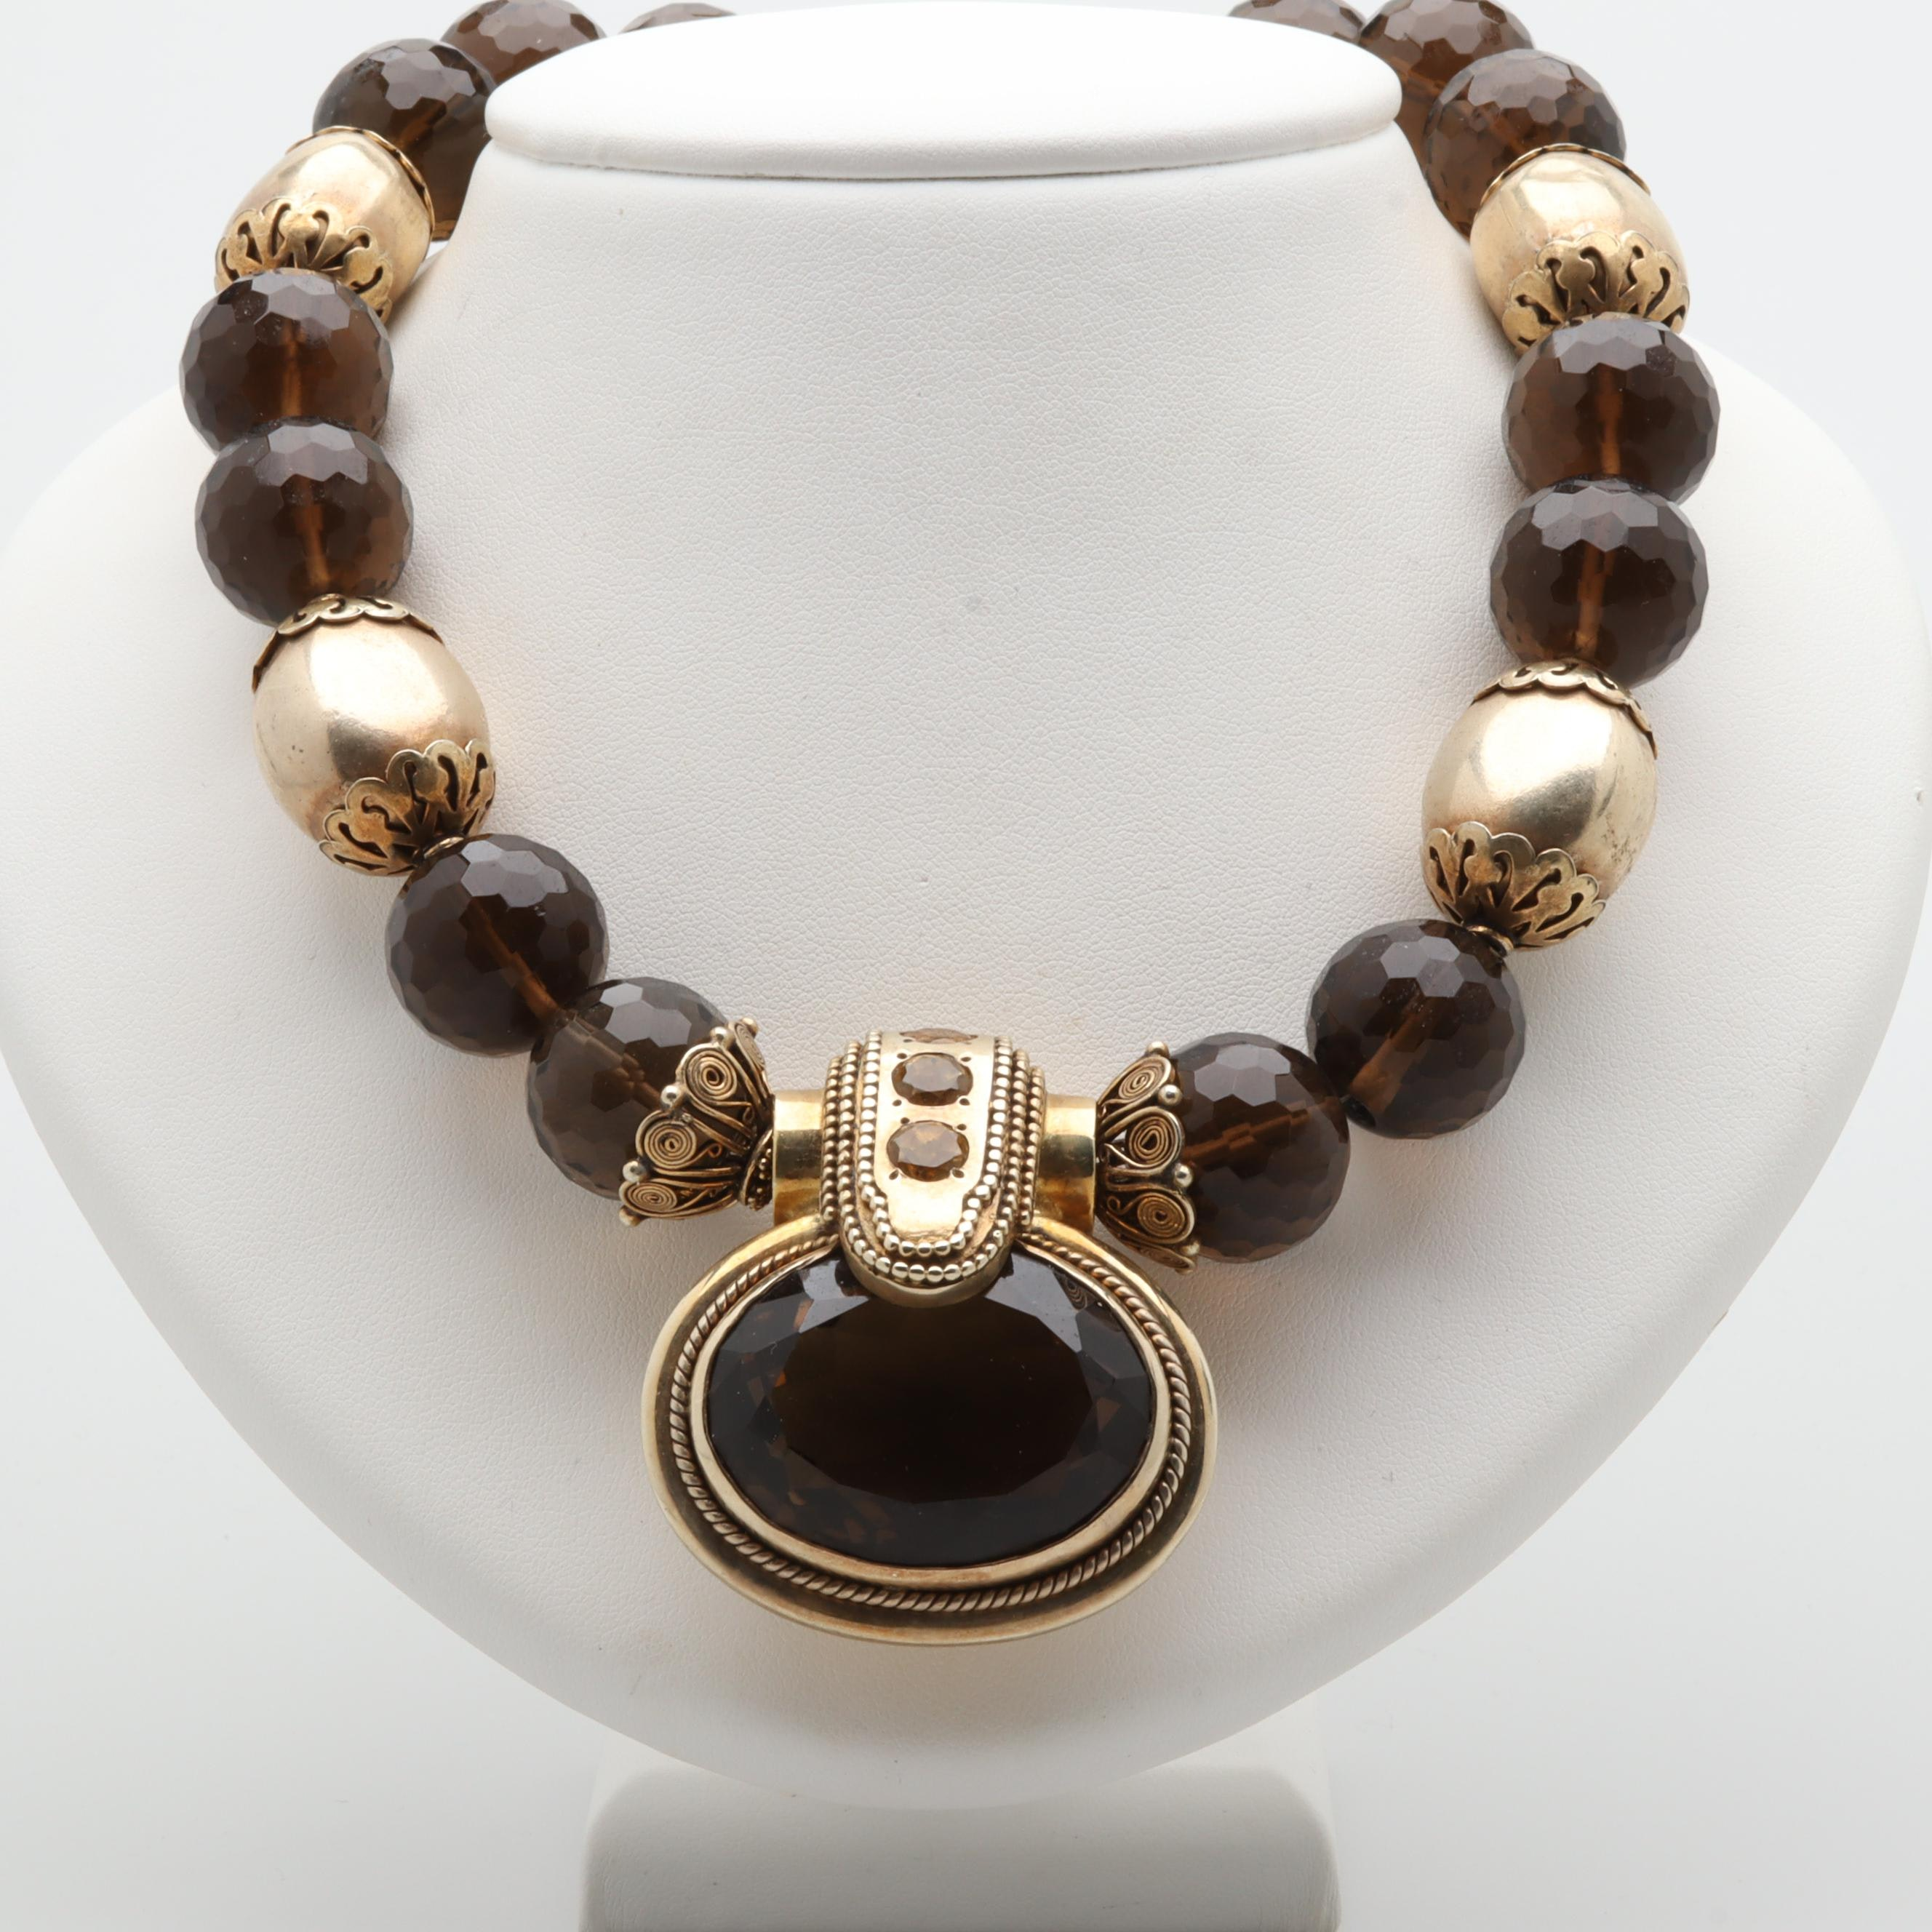 Gold Wash on Sterling Silver Gemstone Necklace Including a 33.87 CT Smoky Quartz